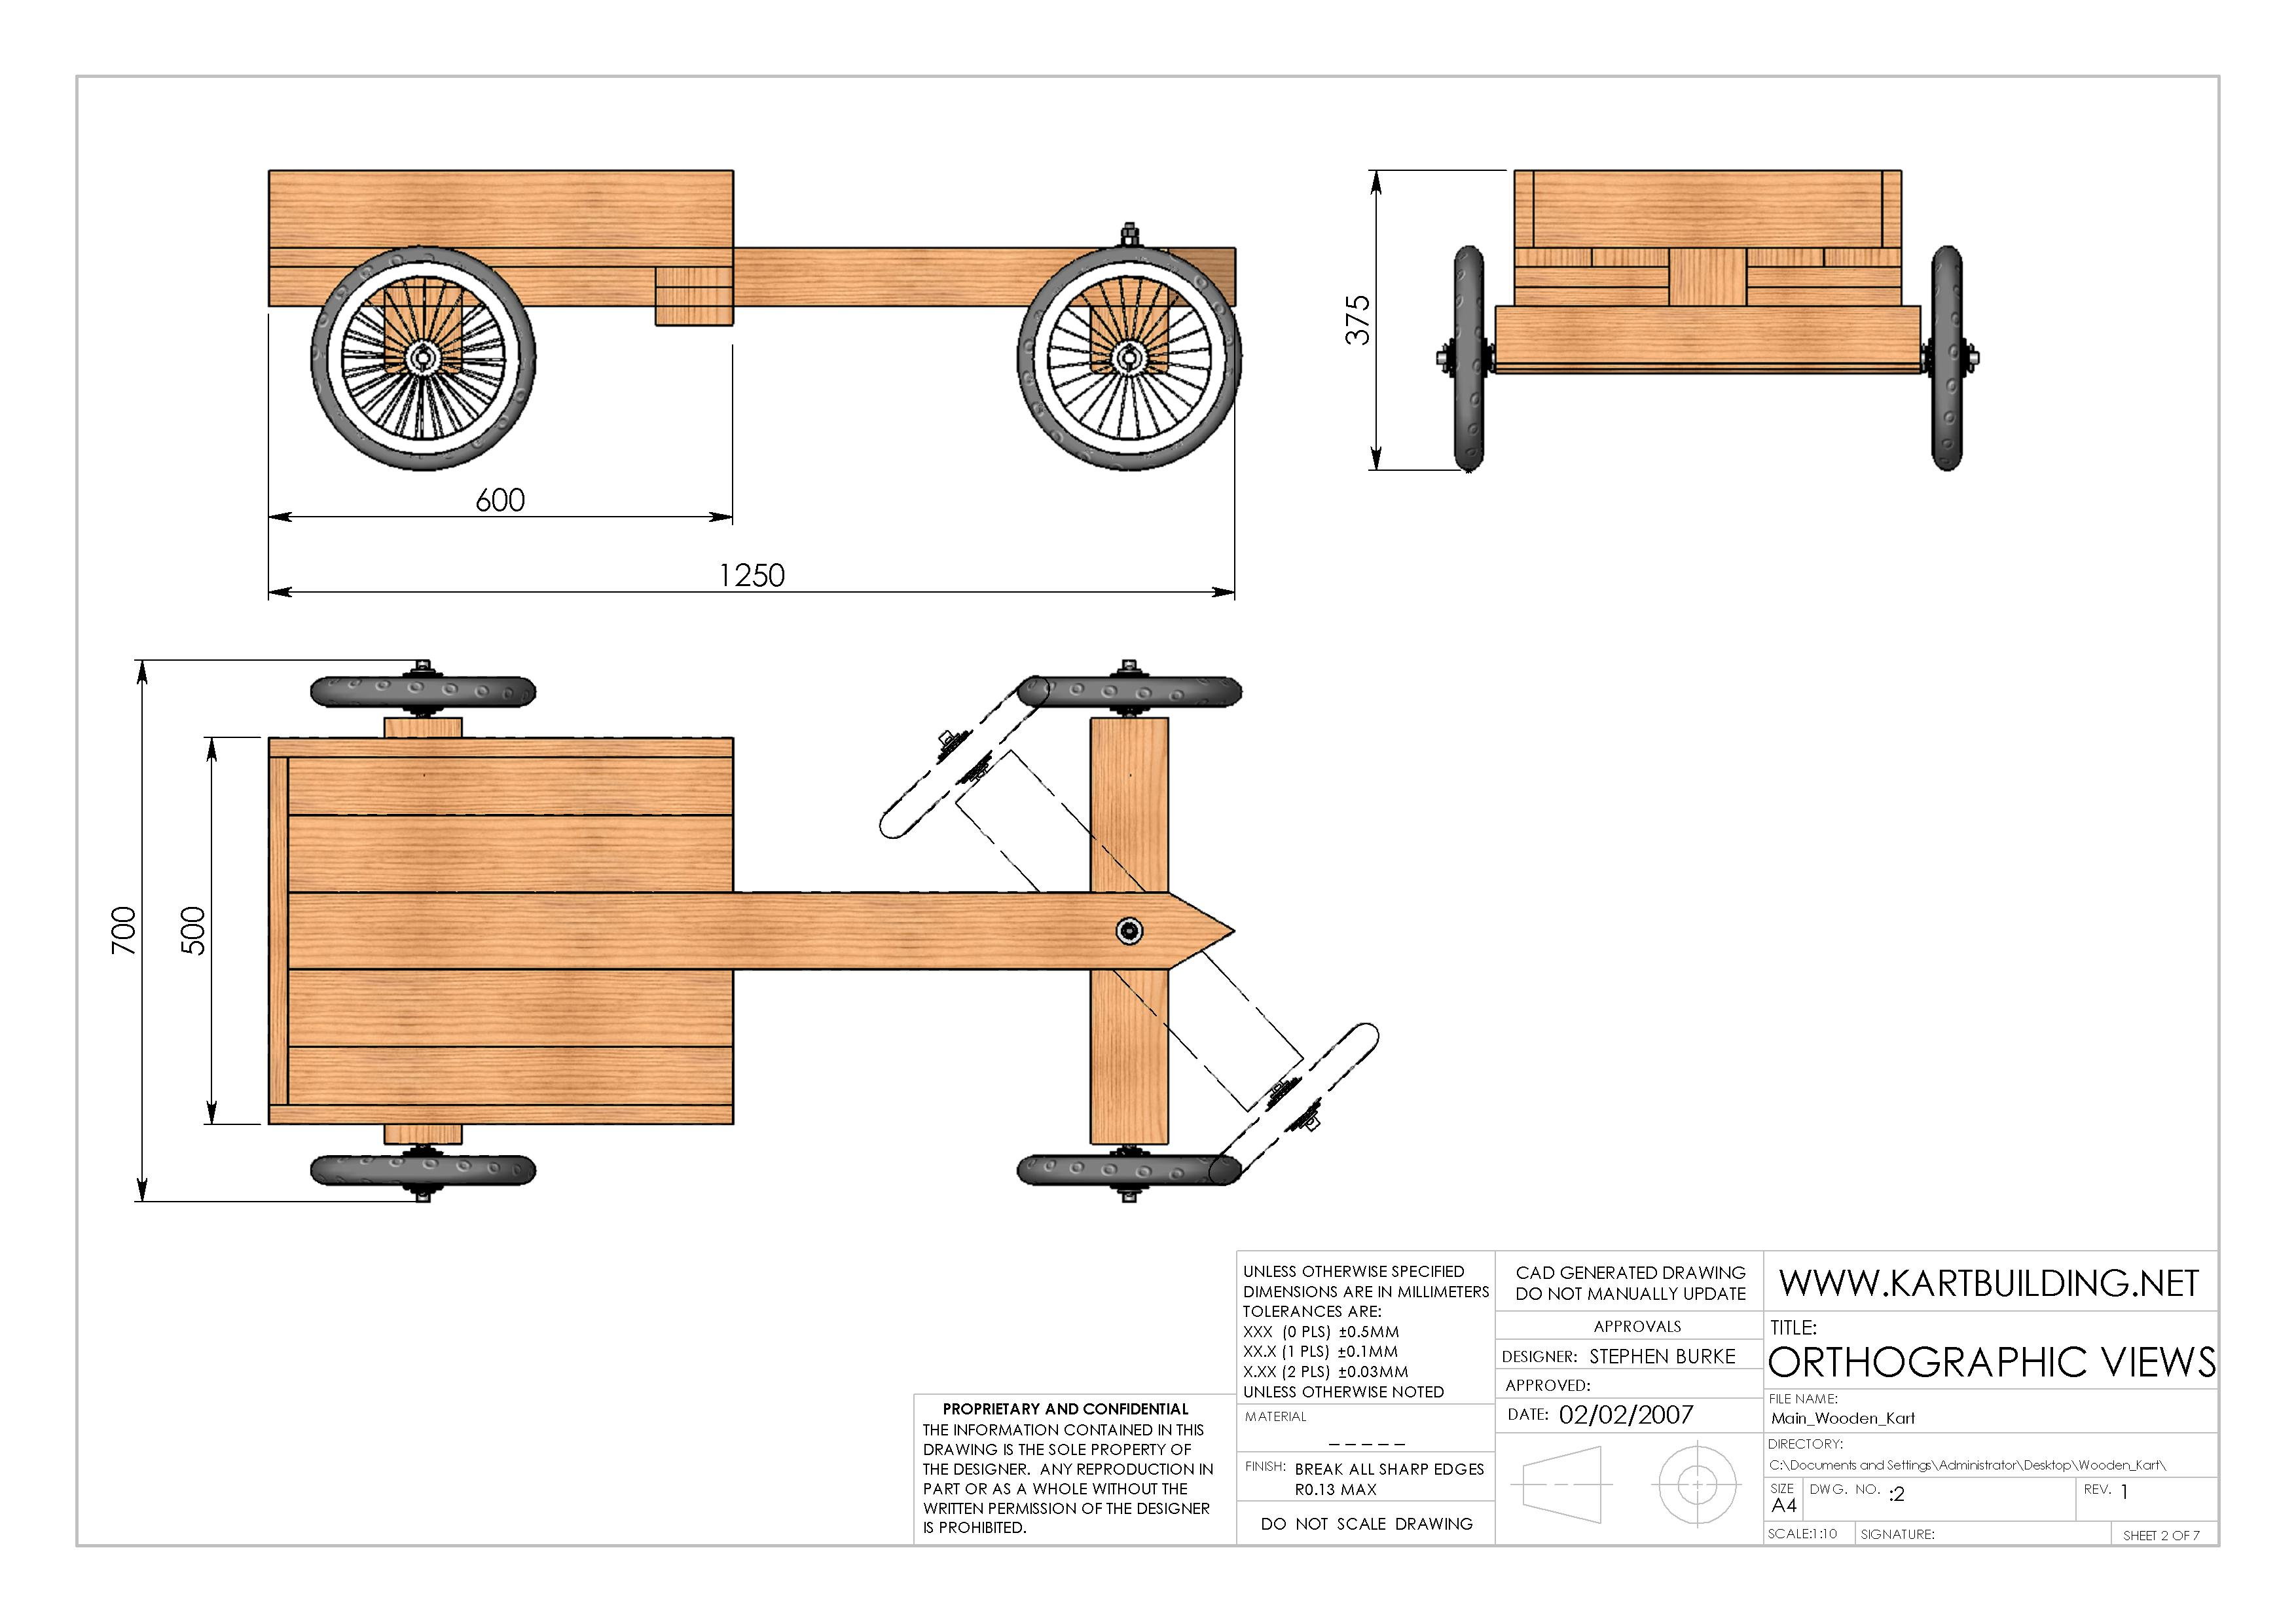 Pedal Car Plans Free http://www.kartbuilding.net/Wooden_Go-Kart_Plans/index.html